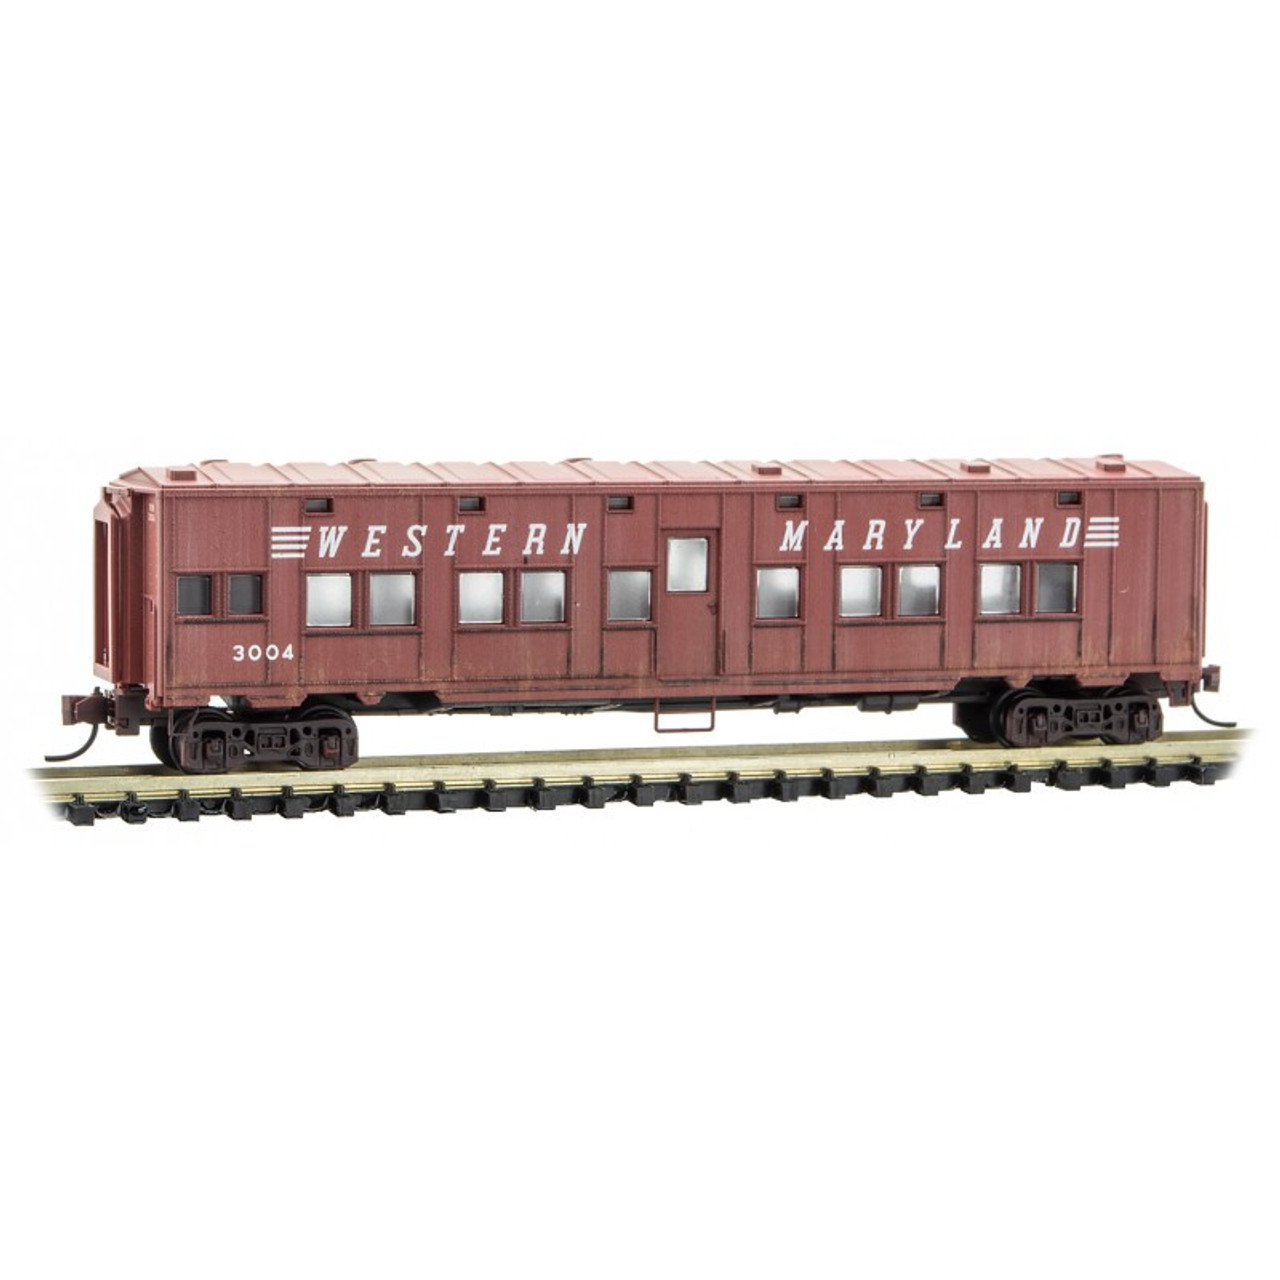 MICRO TRAINS 99305570 WM - Western Maryland Weathered 2-Pack  (SCALE=N)  PART # 489-99305570